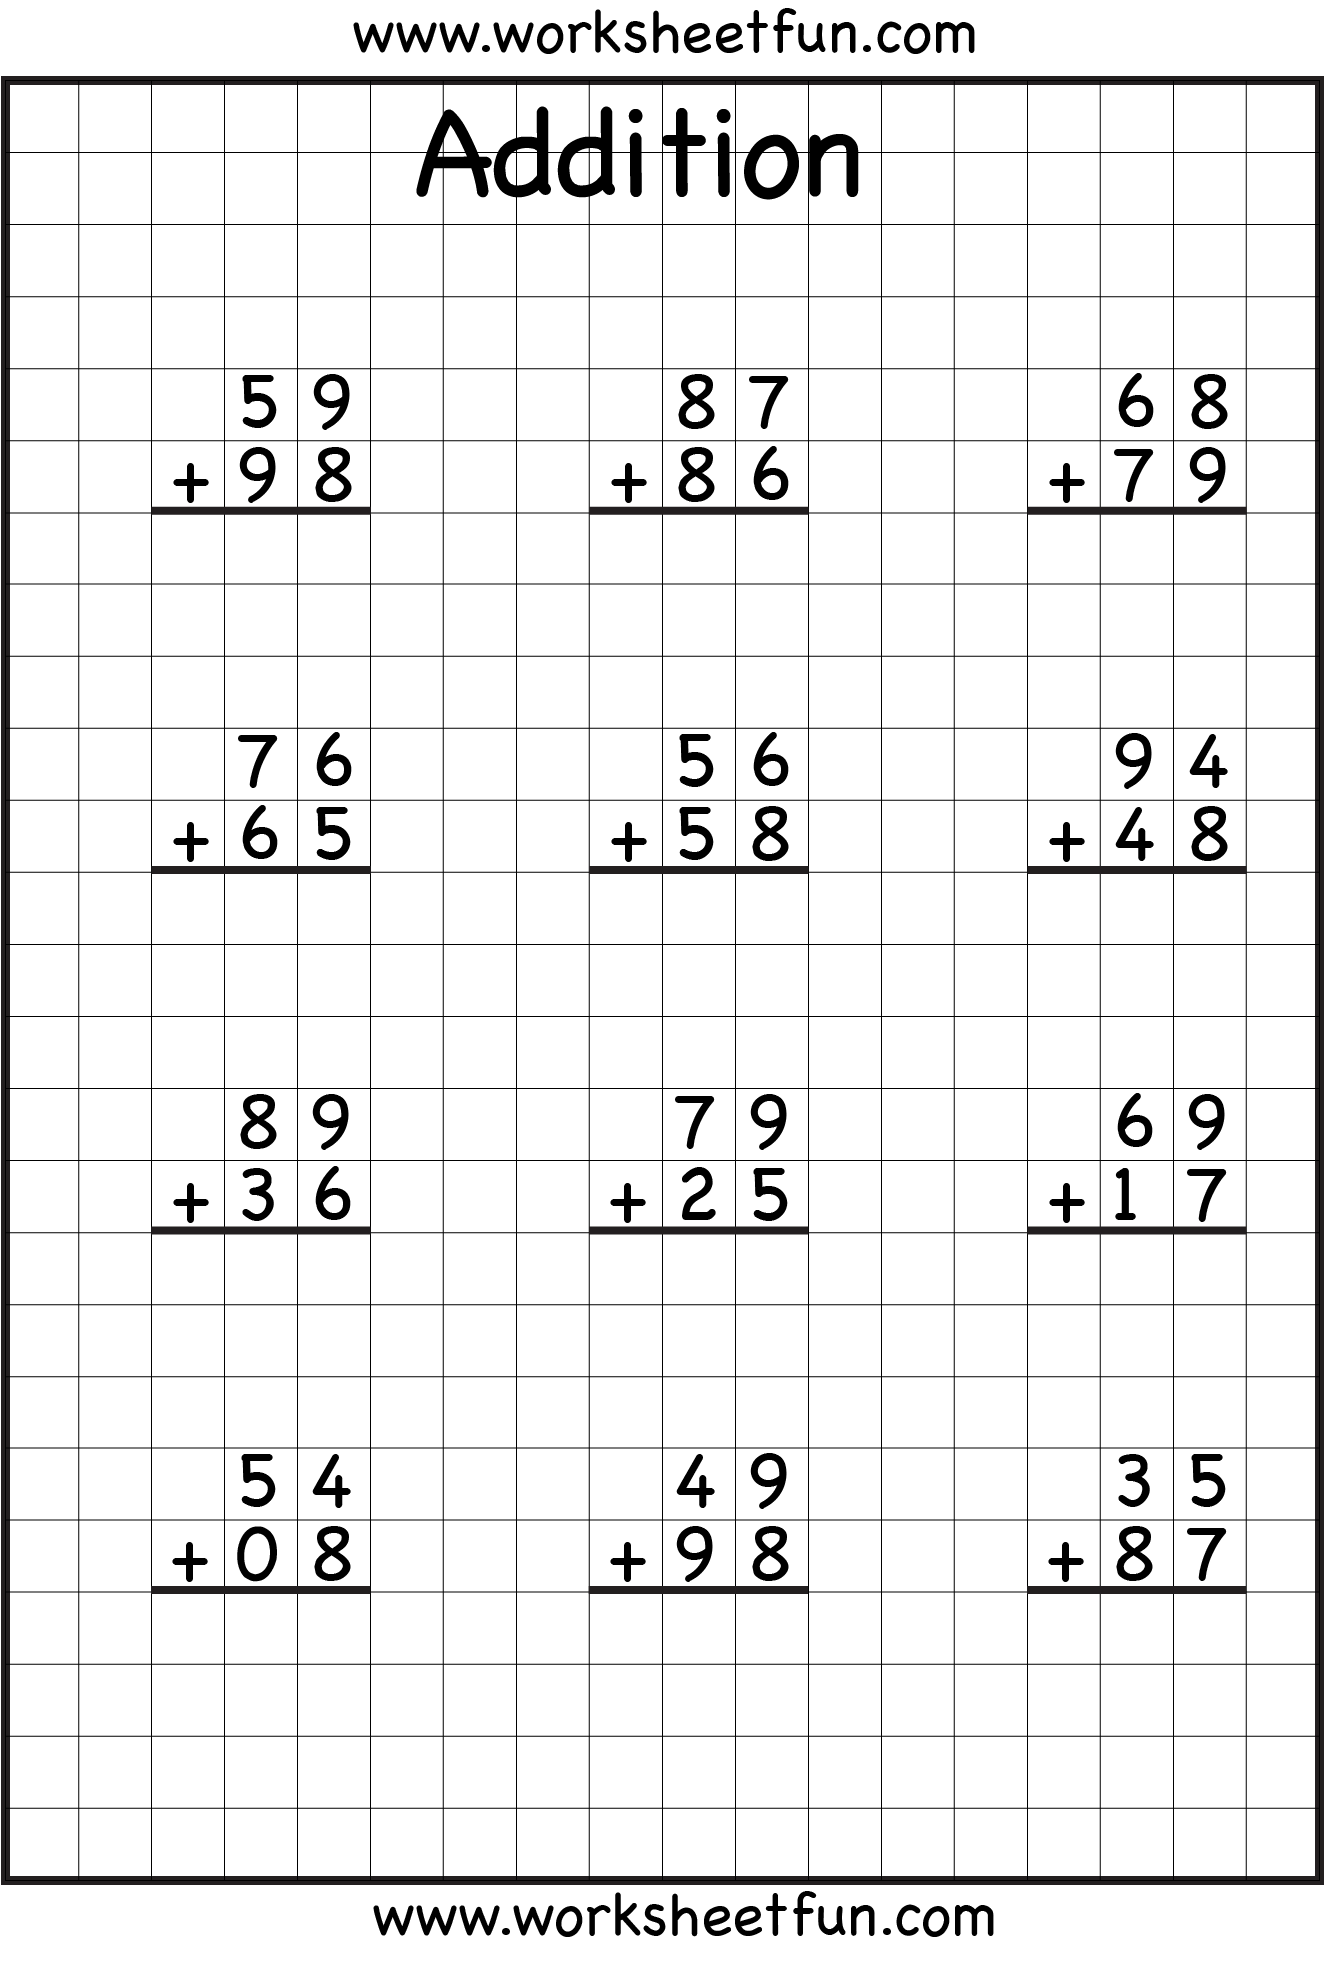 worksheet Addition With Renaming Worksheets addition regrouping teaching math pinterest maths worksheets 2 digit with carrying 5 on